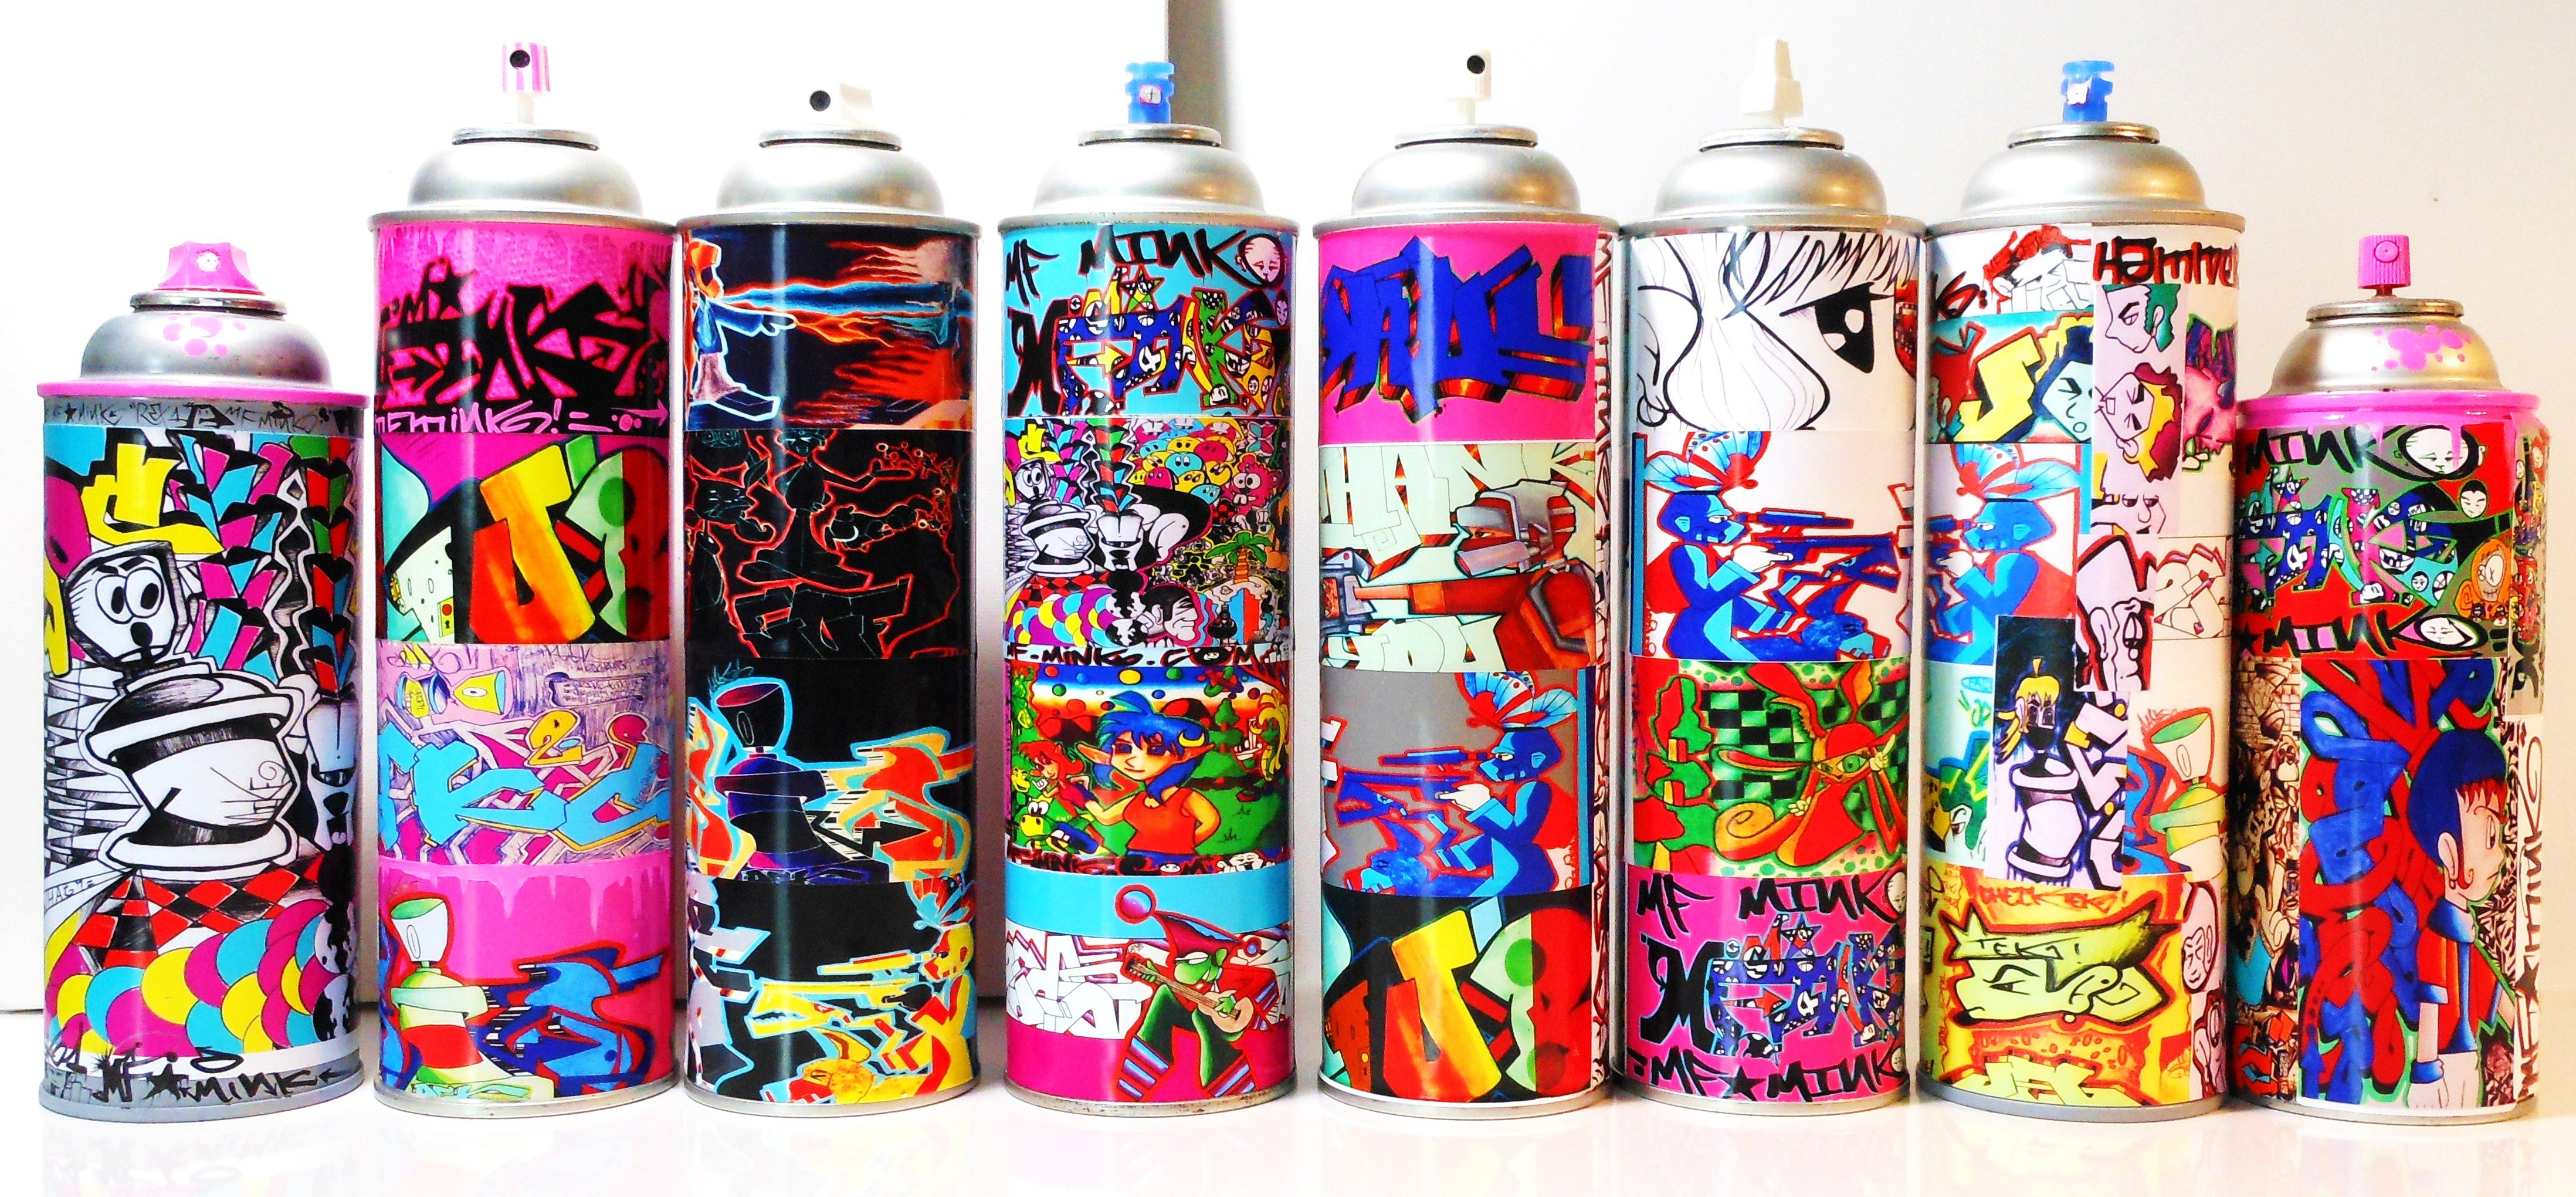 graffiti art spray paint cans street graffiti street art spray can. Black Bedroom Furniture Sets. Home Design Ideas